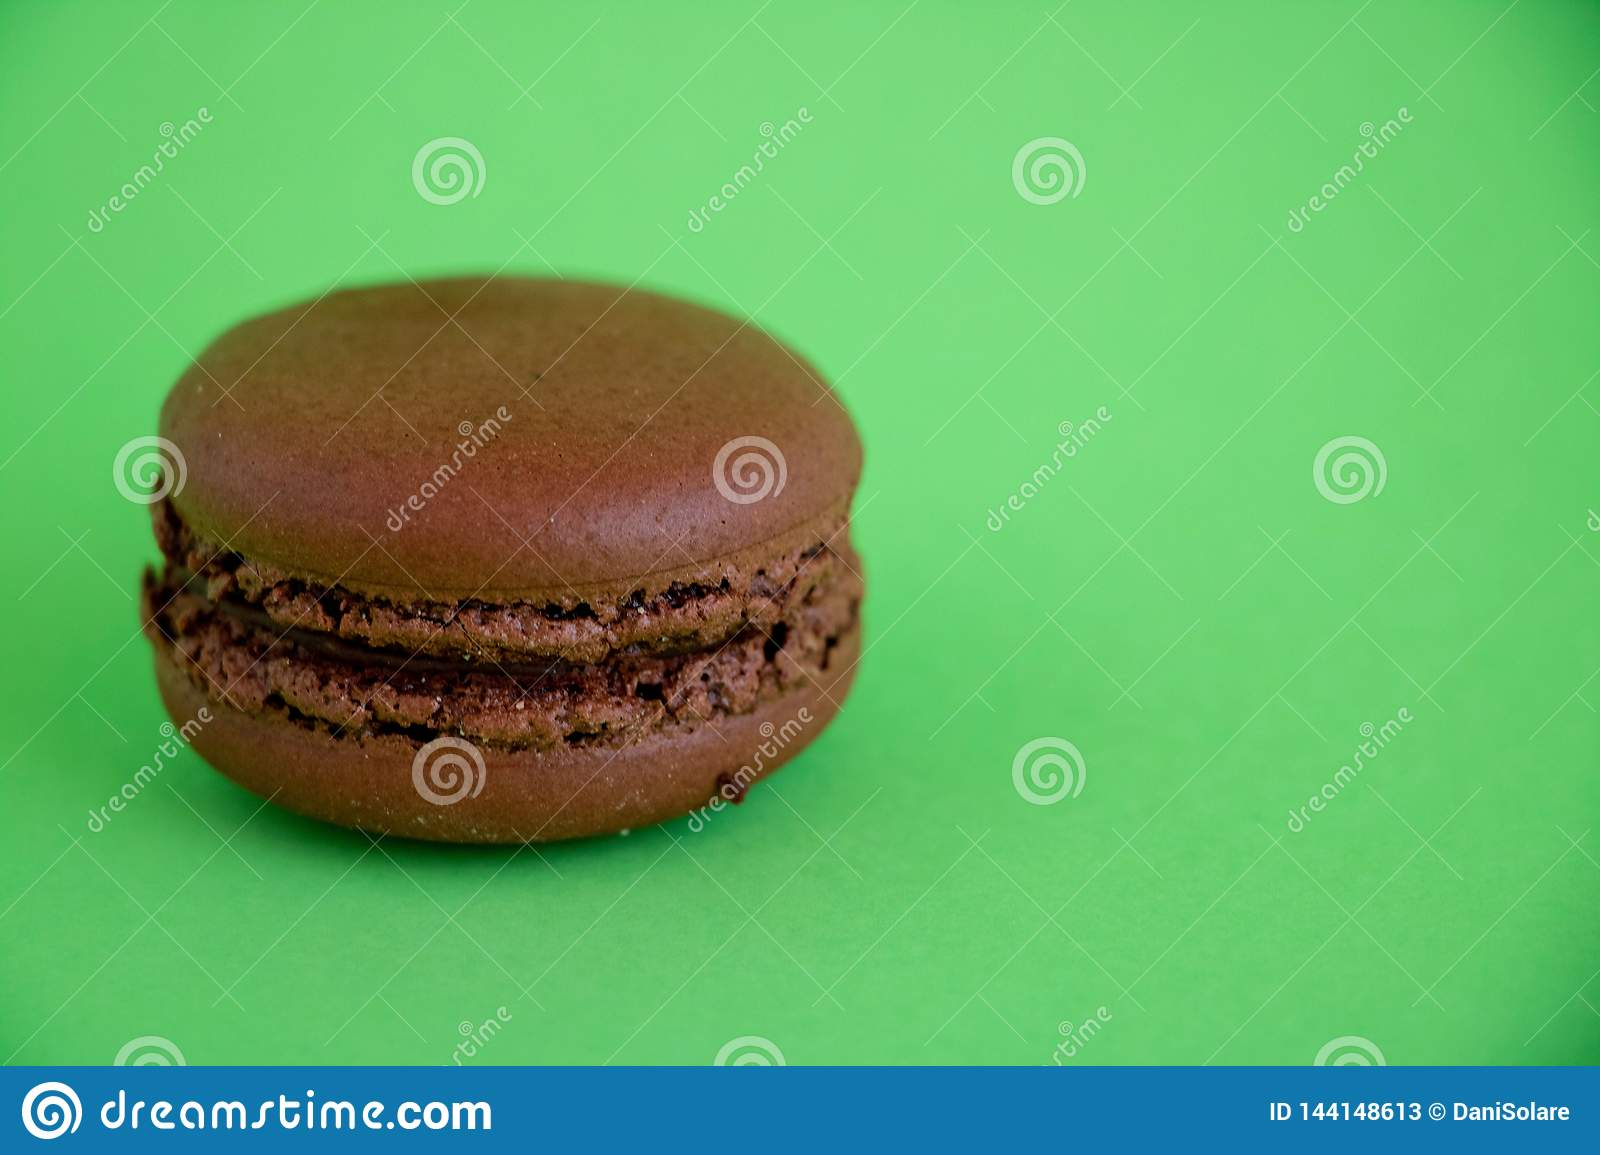 Chocolate macaroons on green background.